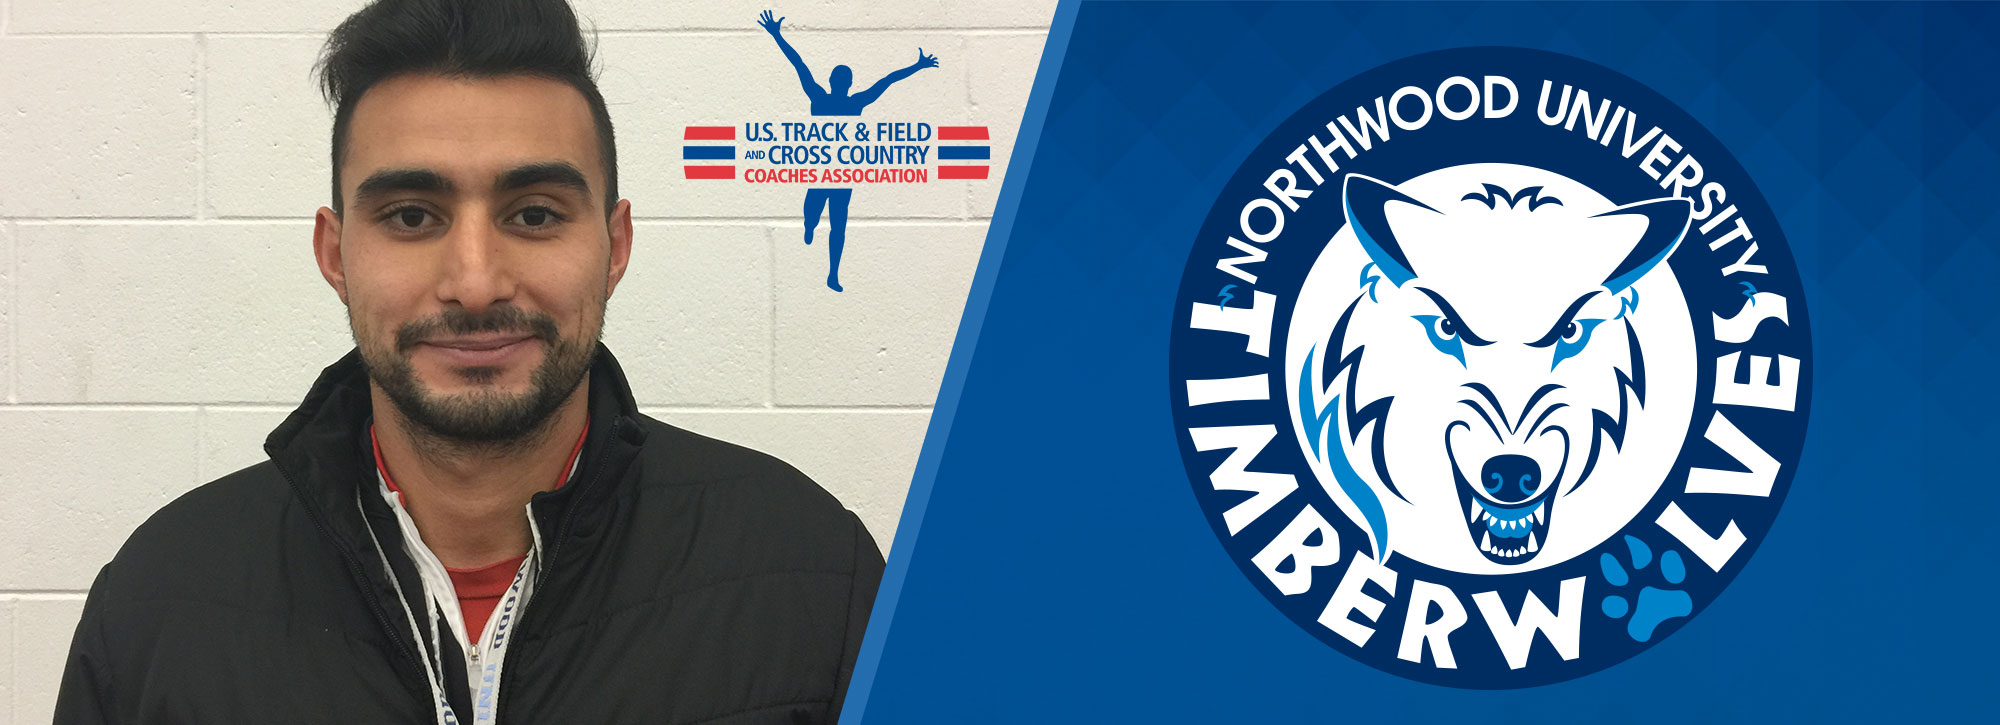 Northwood's Gharsalli Named 2017 USTFCCCA Indoor Scholar Athlete of the Year; 72 Earn All-Academic Accolades